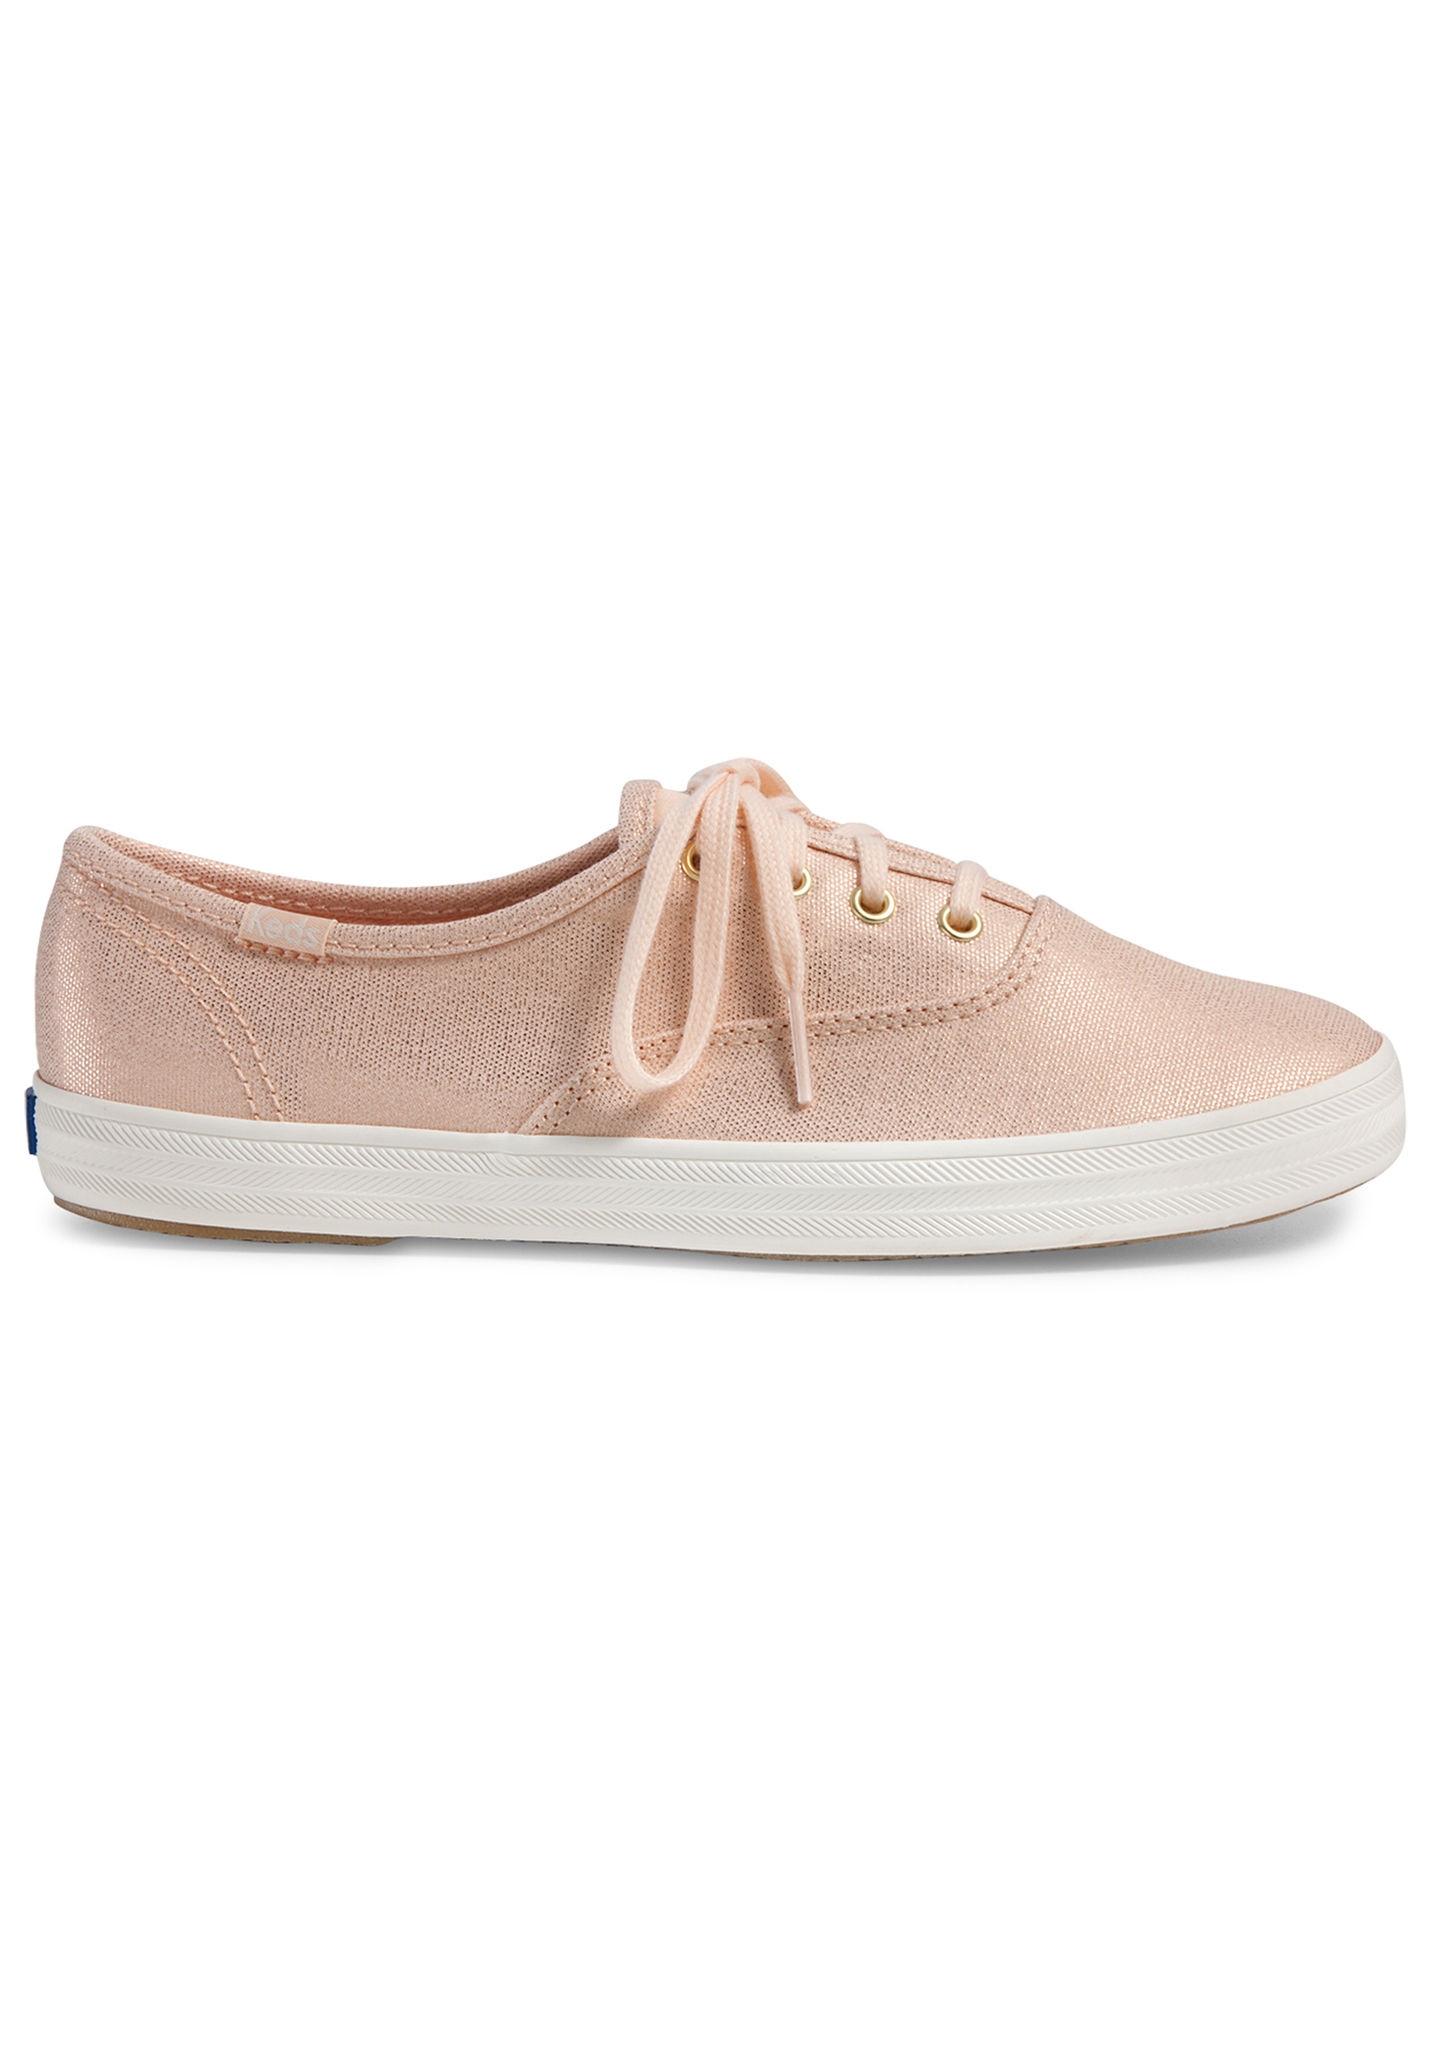 Keds CH Metallic Canvas - Sneakers for Women - Beige - Planet Sports e65ca43906